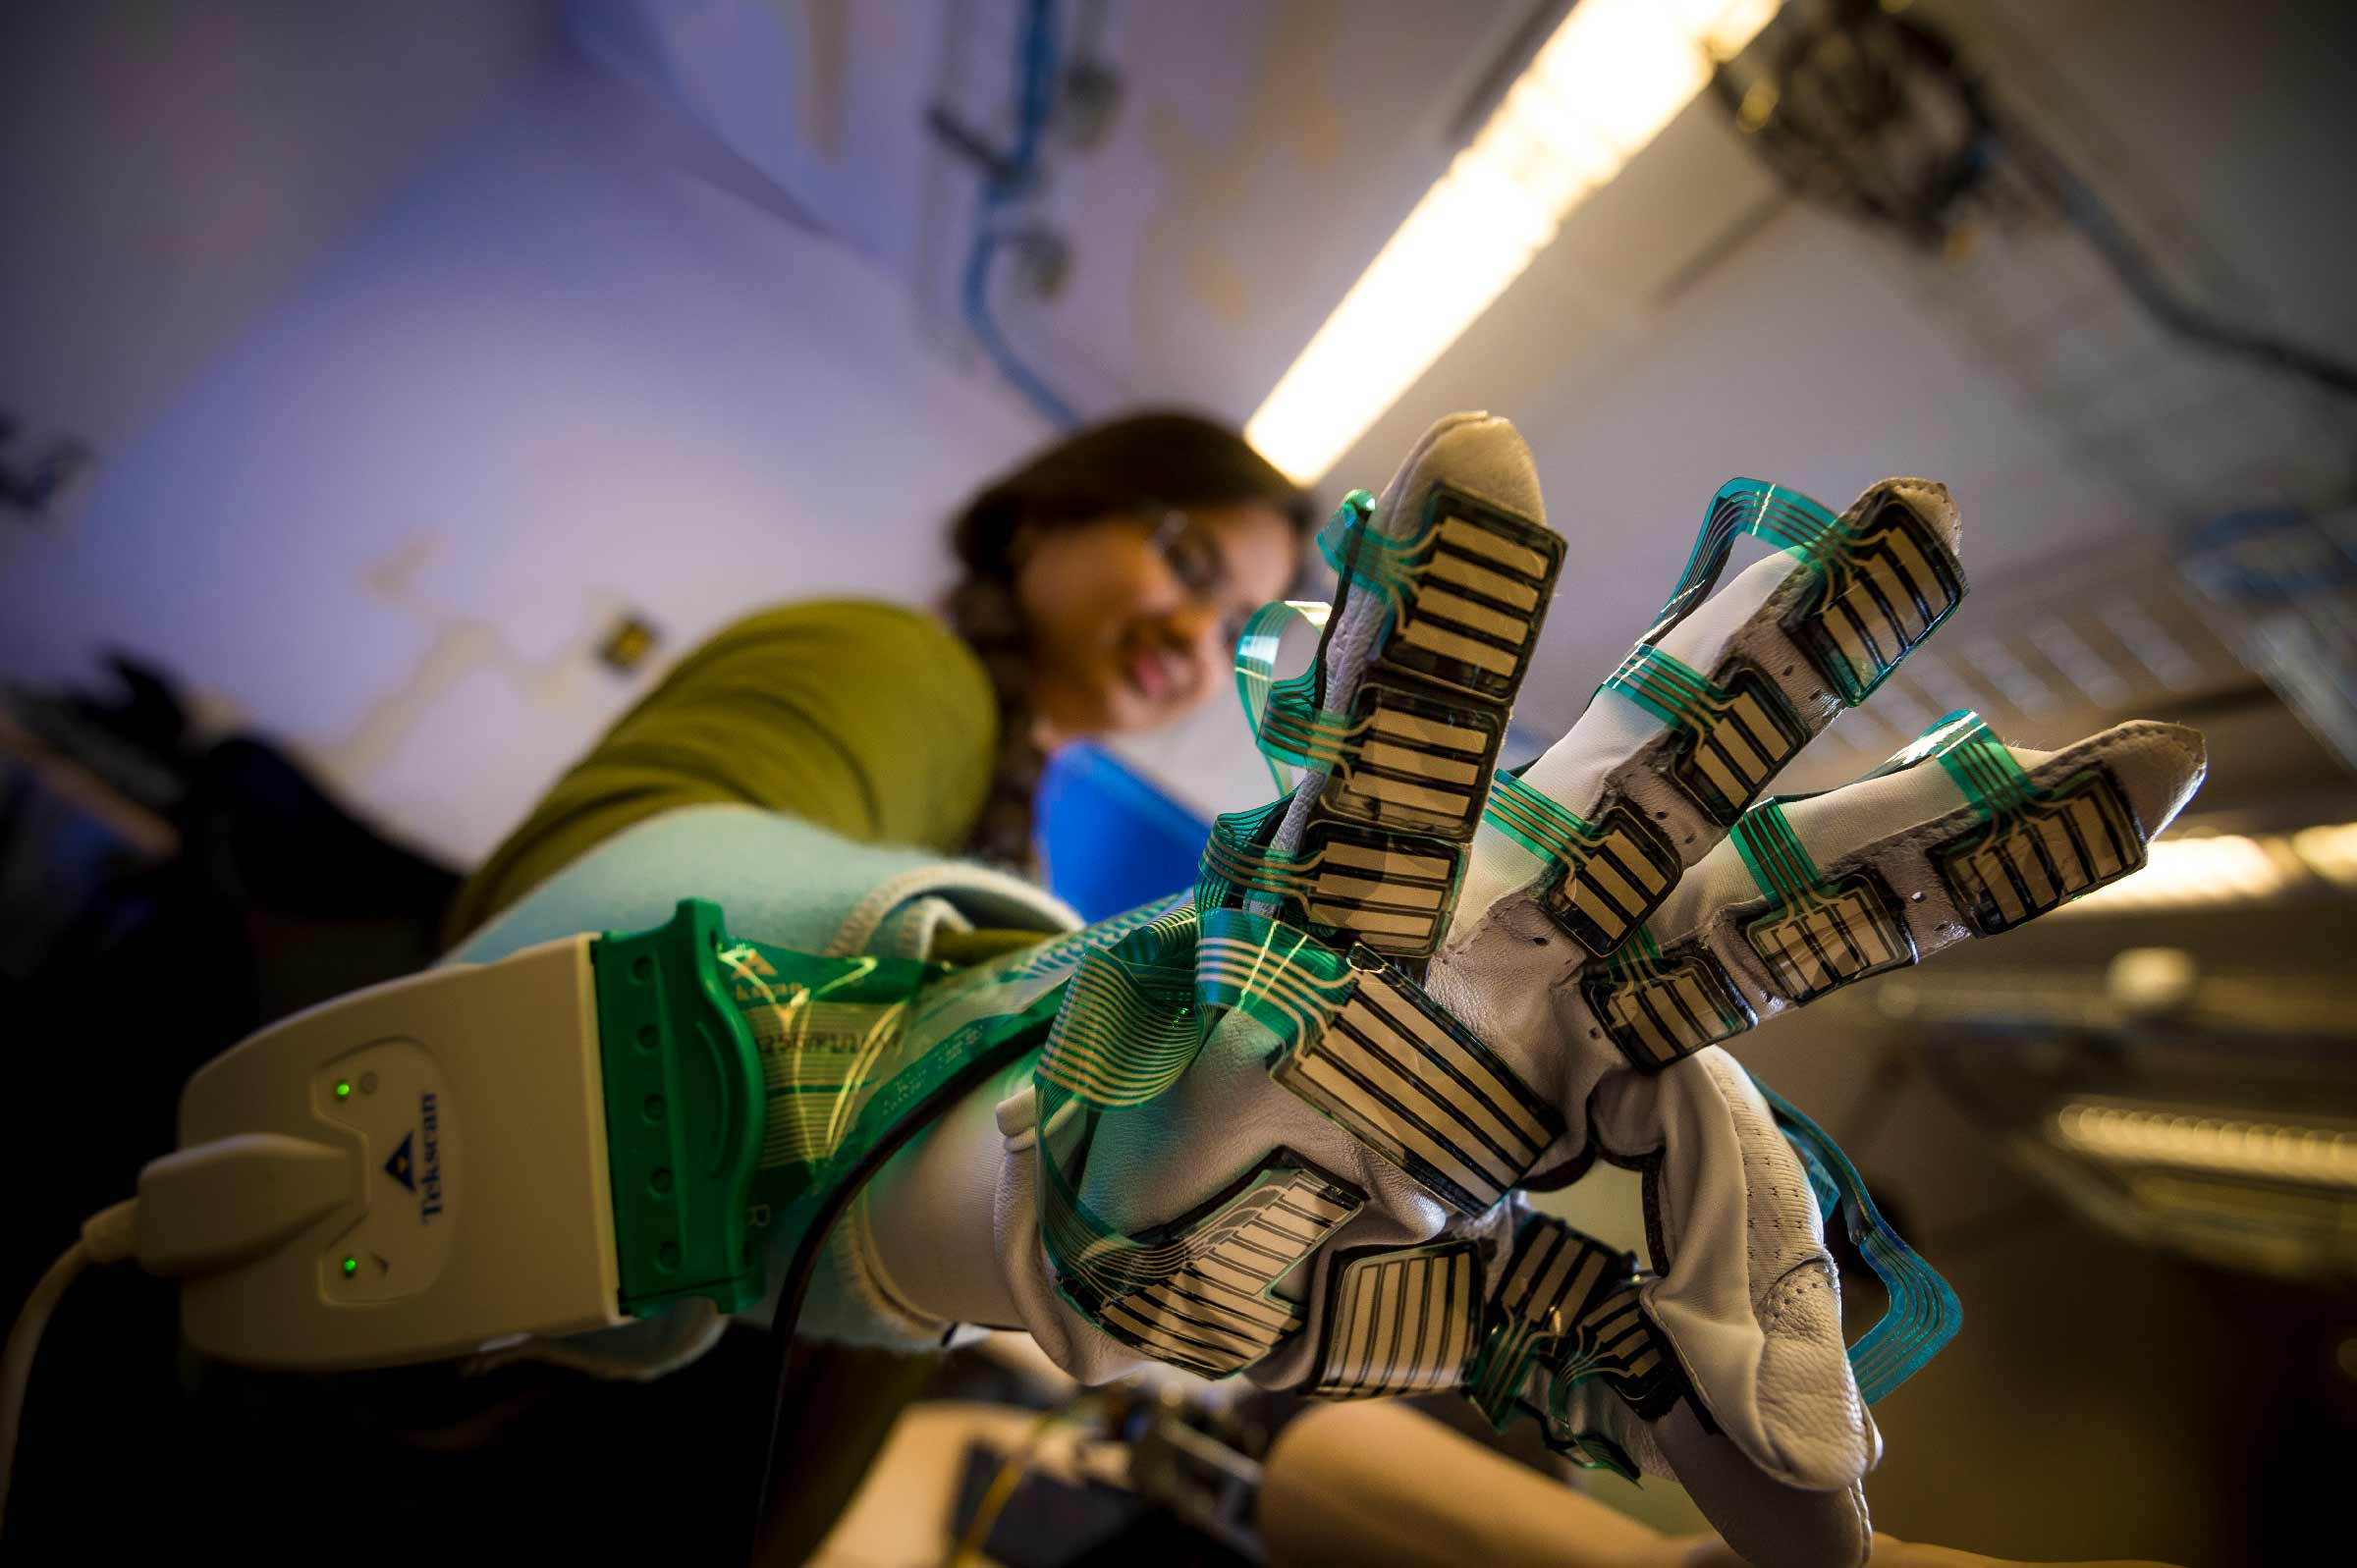 Sensor-Equipped glove UC San Diego